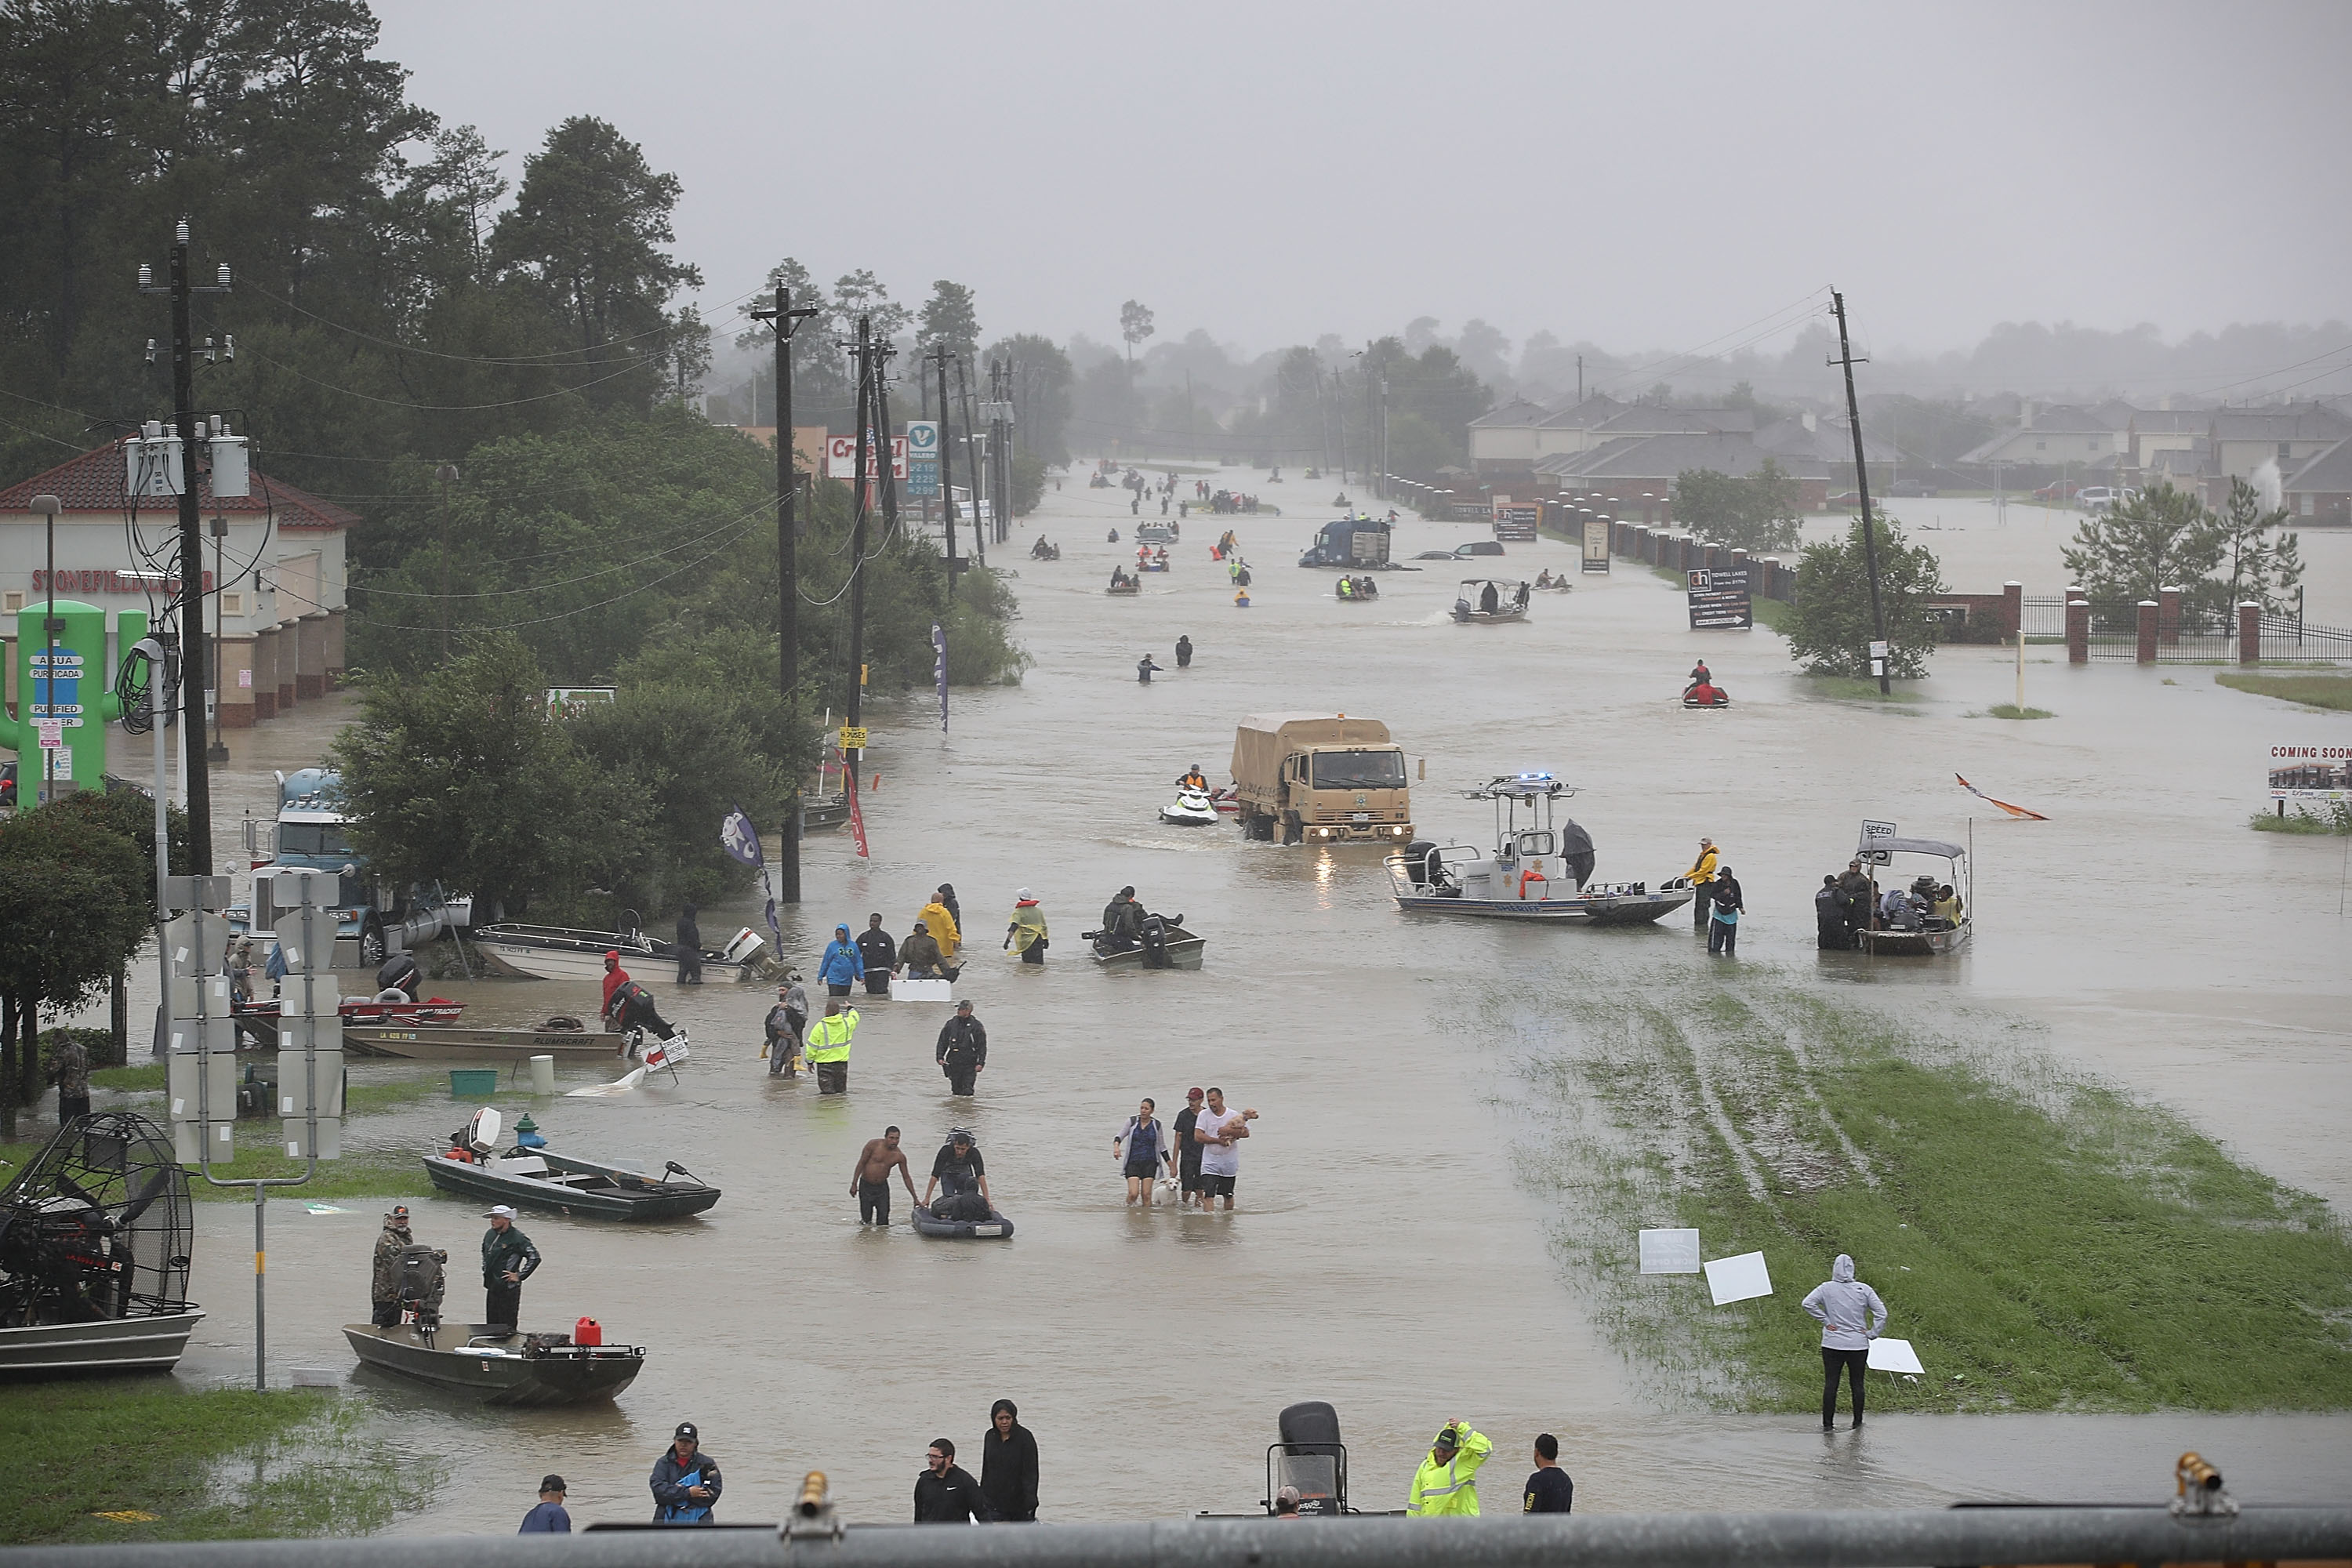 After Katrina, I fled to Houston. Now I'm reliving the nightmare.